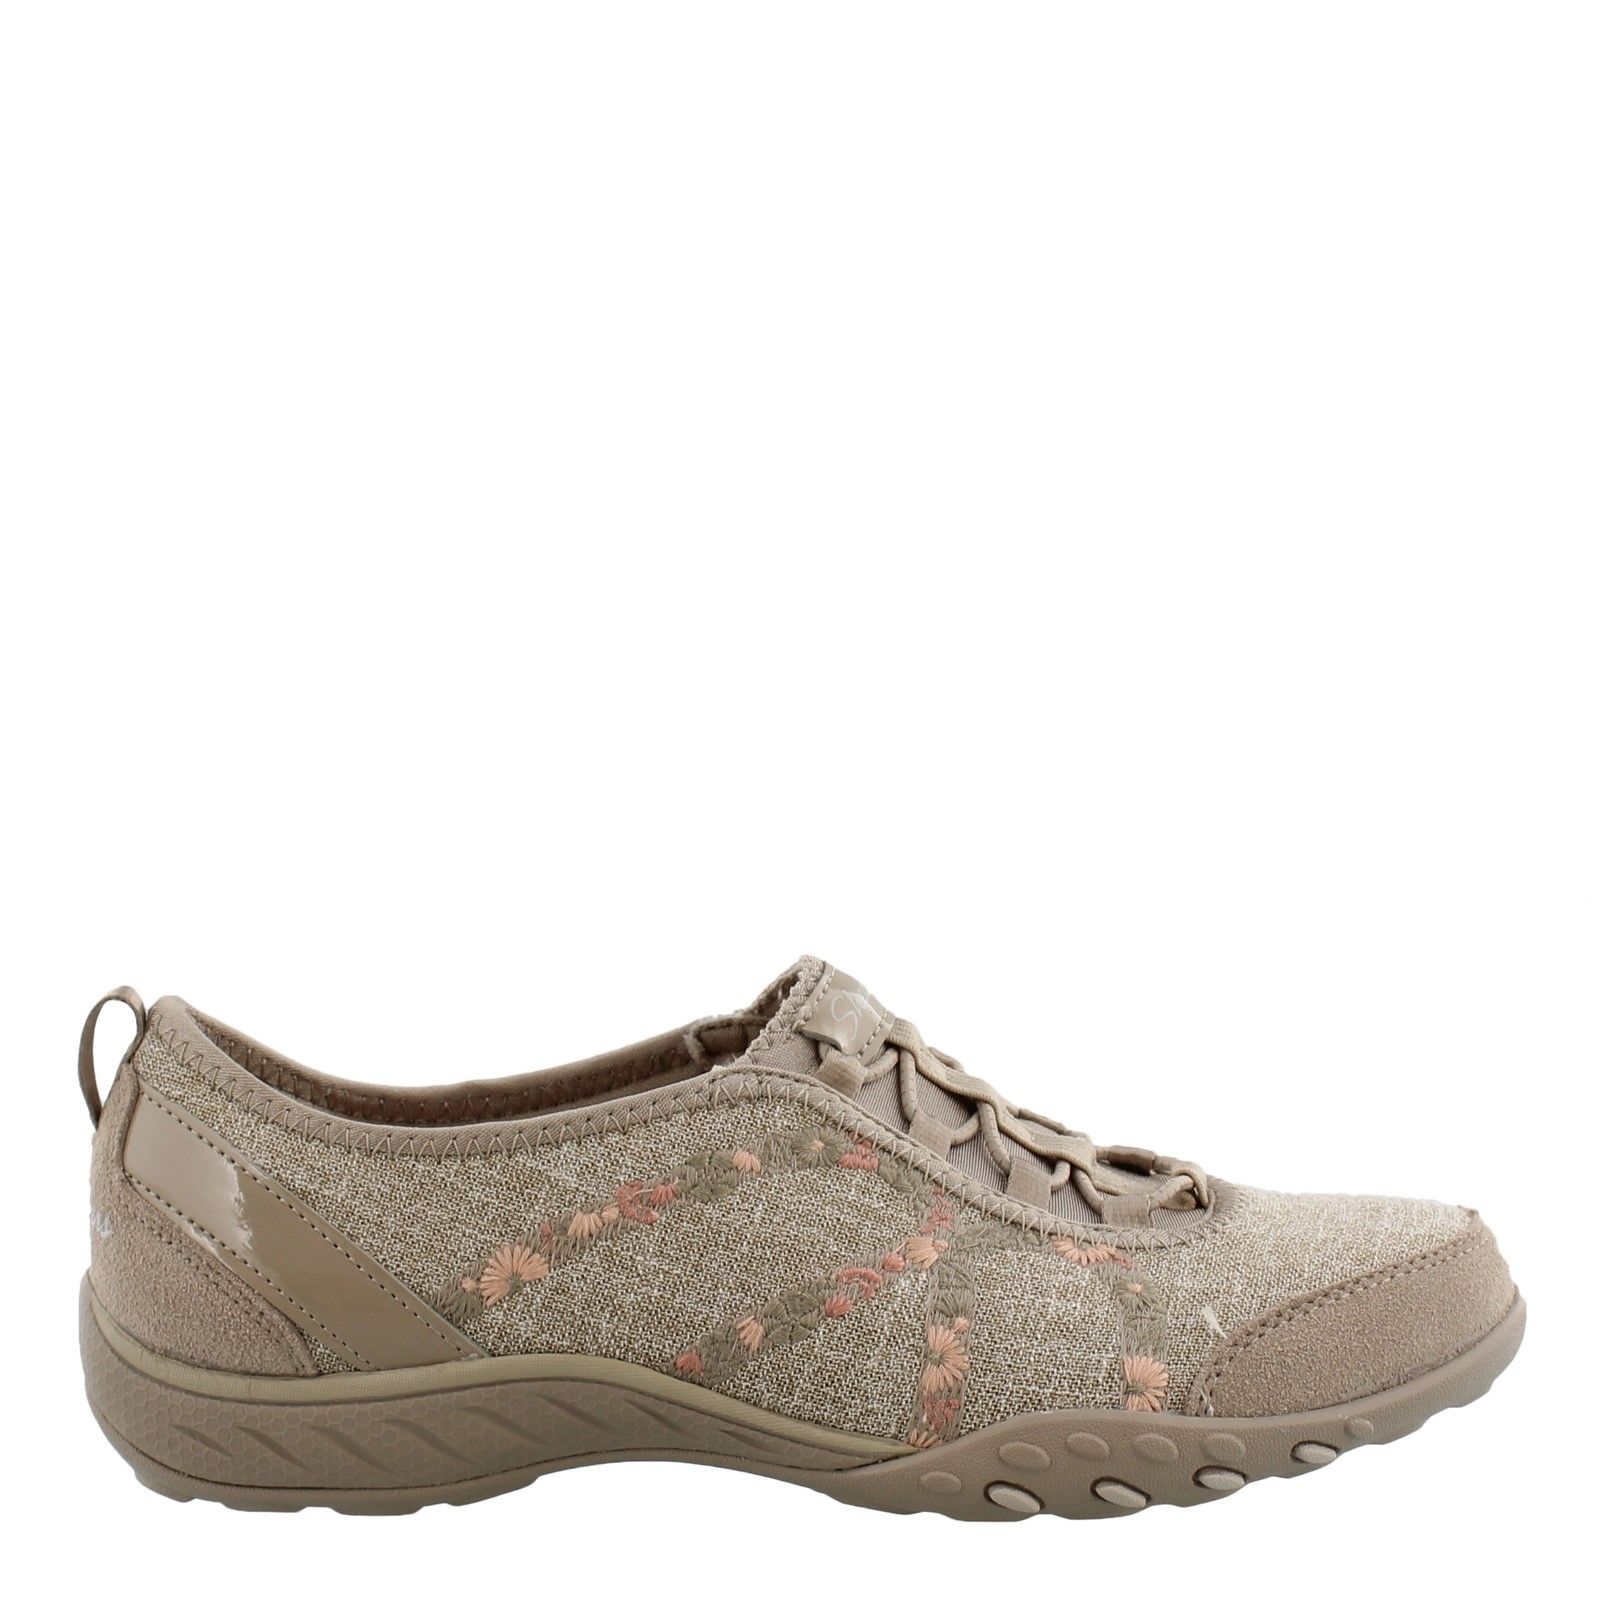 newest aaf5a 40274 Home  Women s Skechers, Relaxed Fit Breathe-Easy - Garden Joy Shoes.  Previous. default view ...